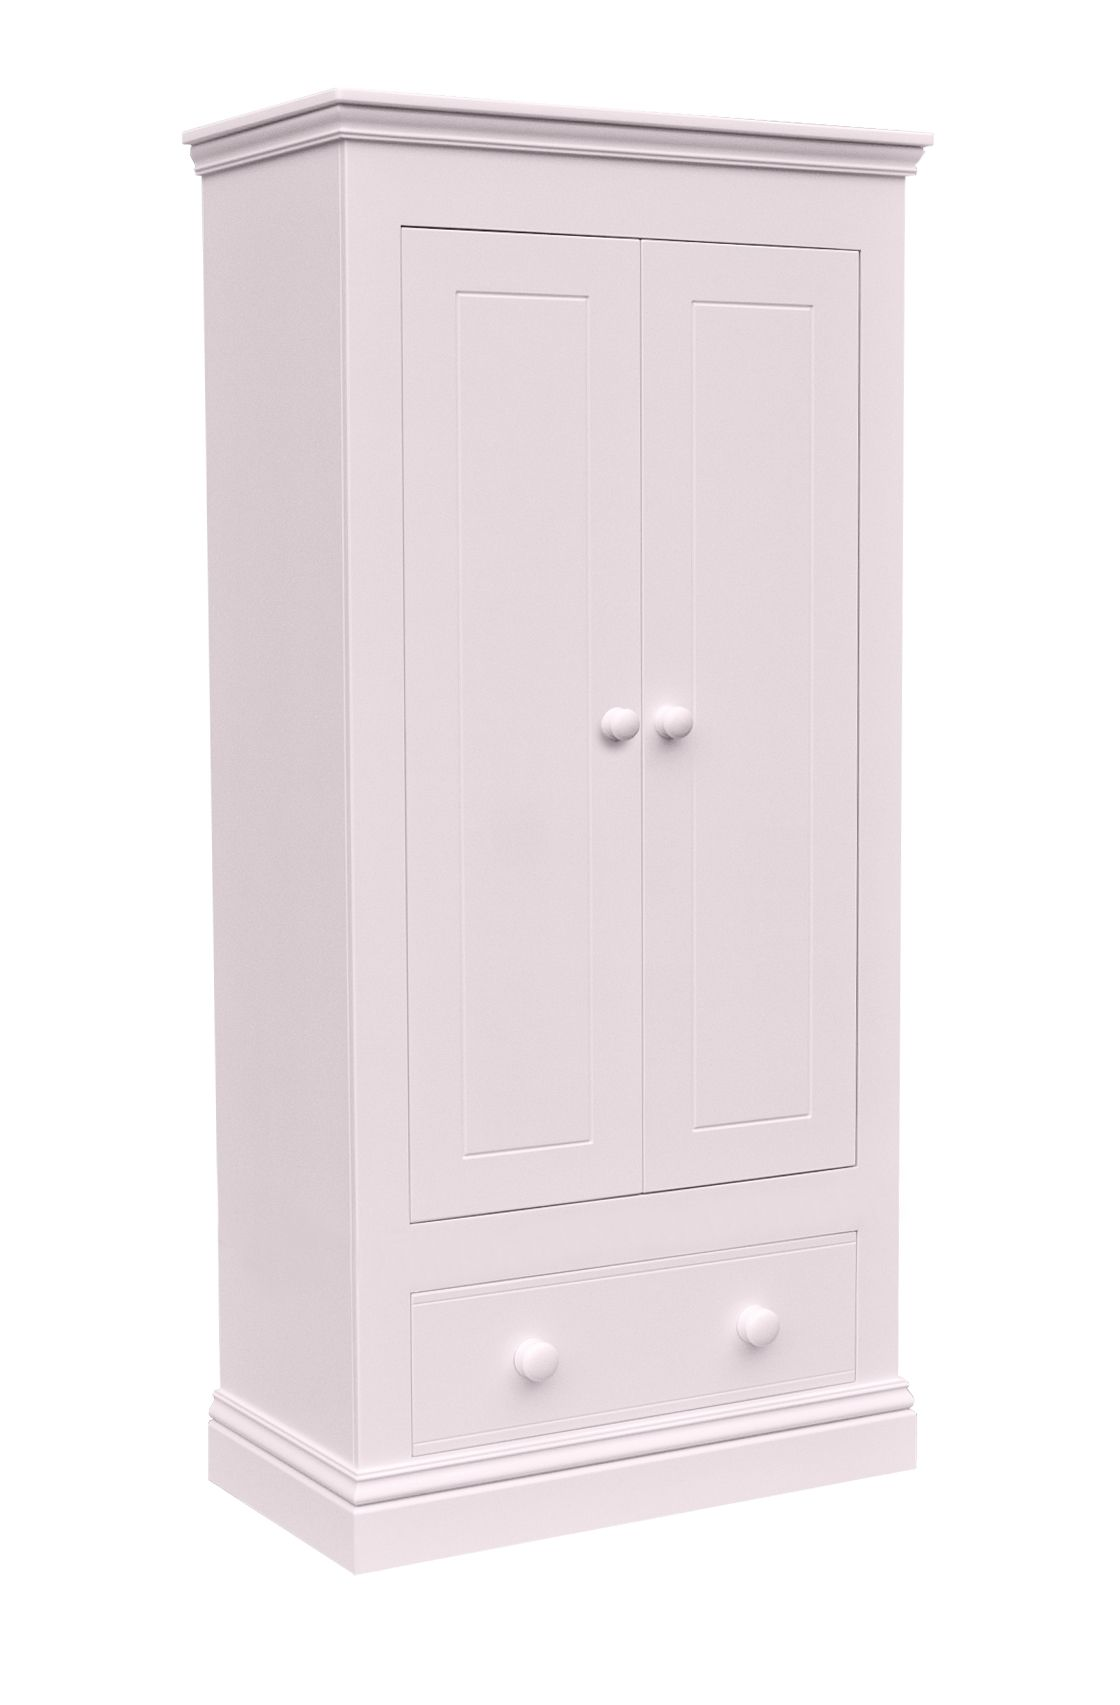 New Hampton 2 Door Wardrobe with 1 Drawer